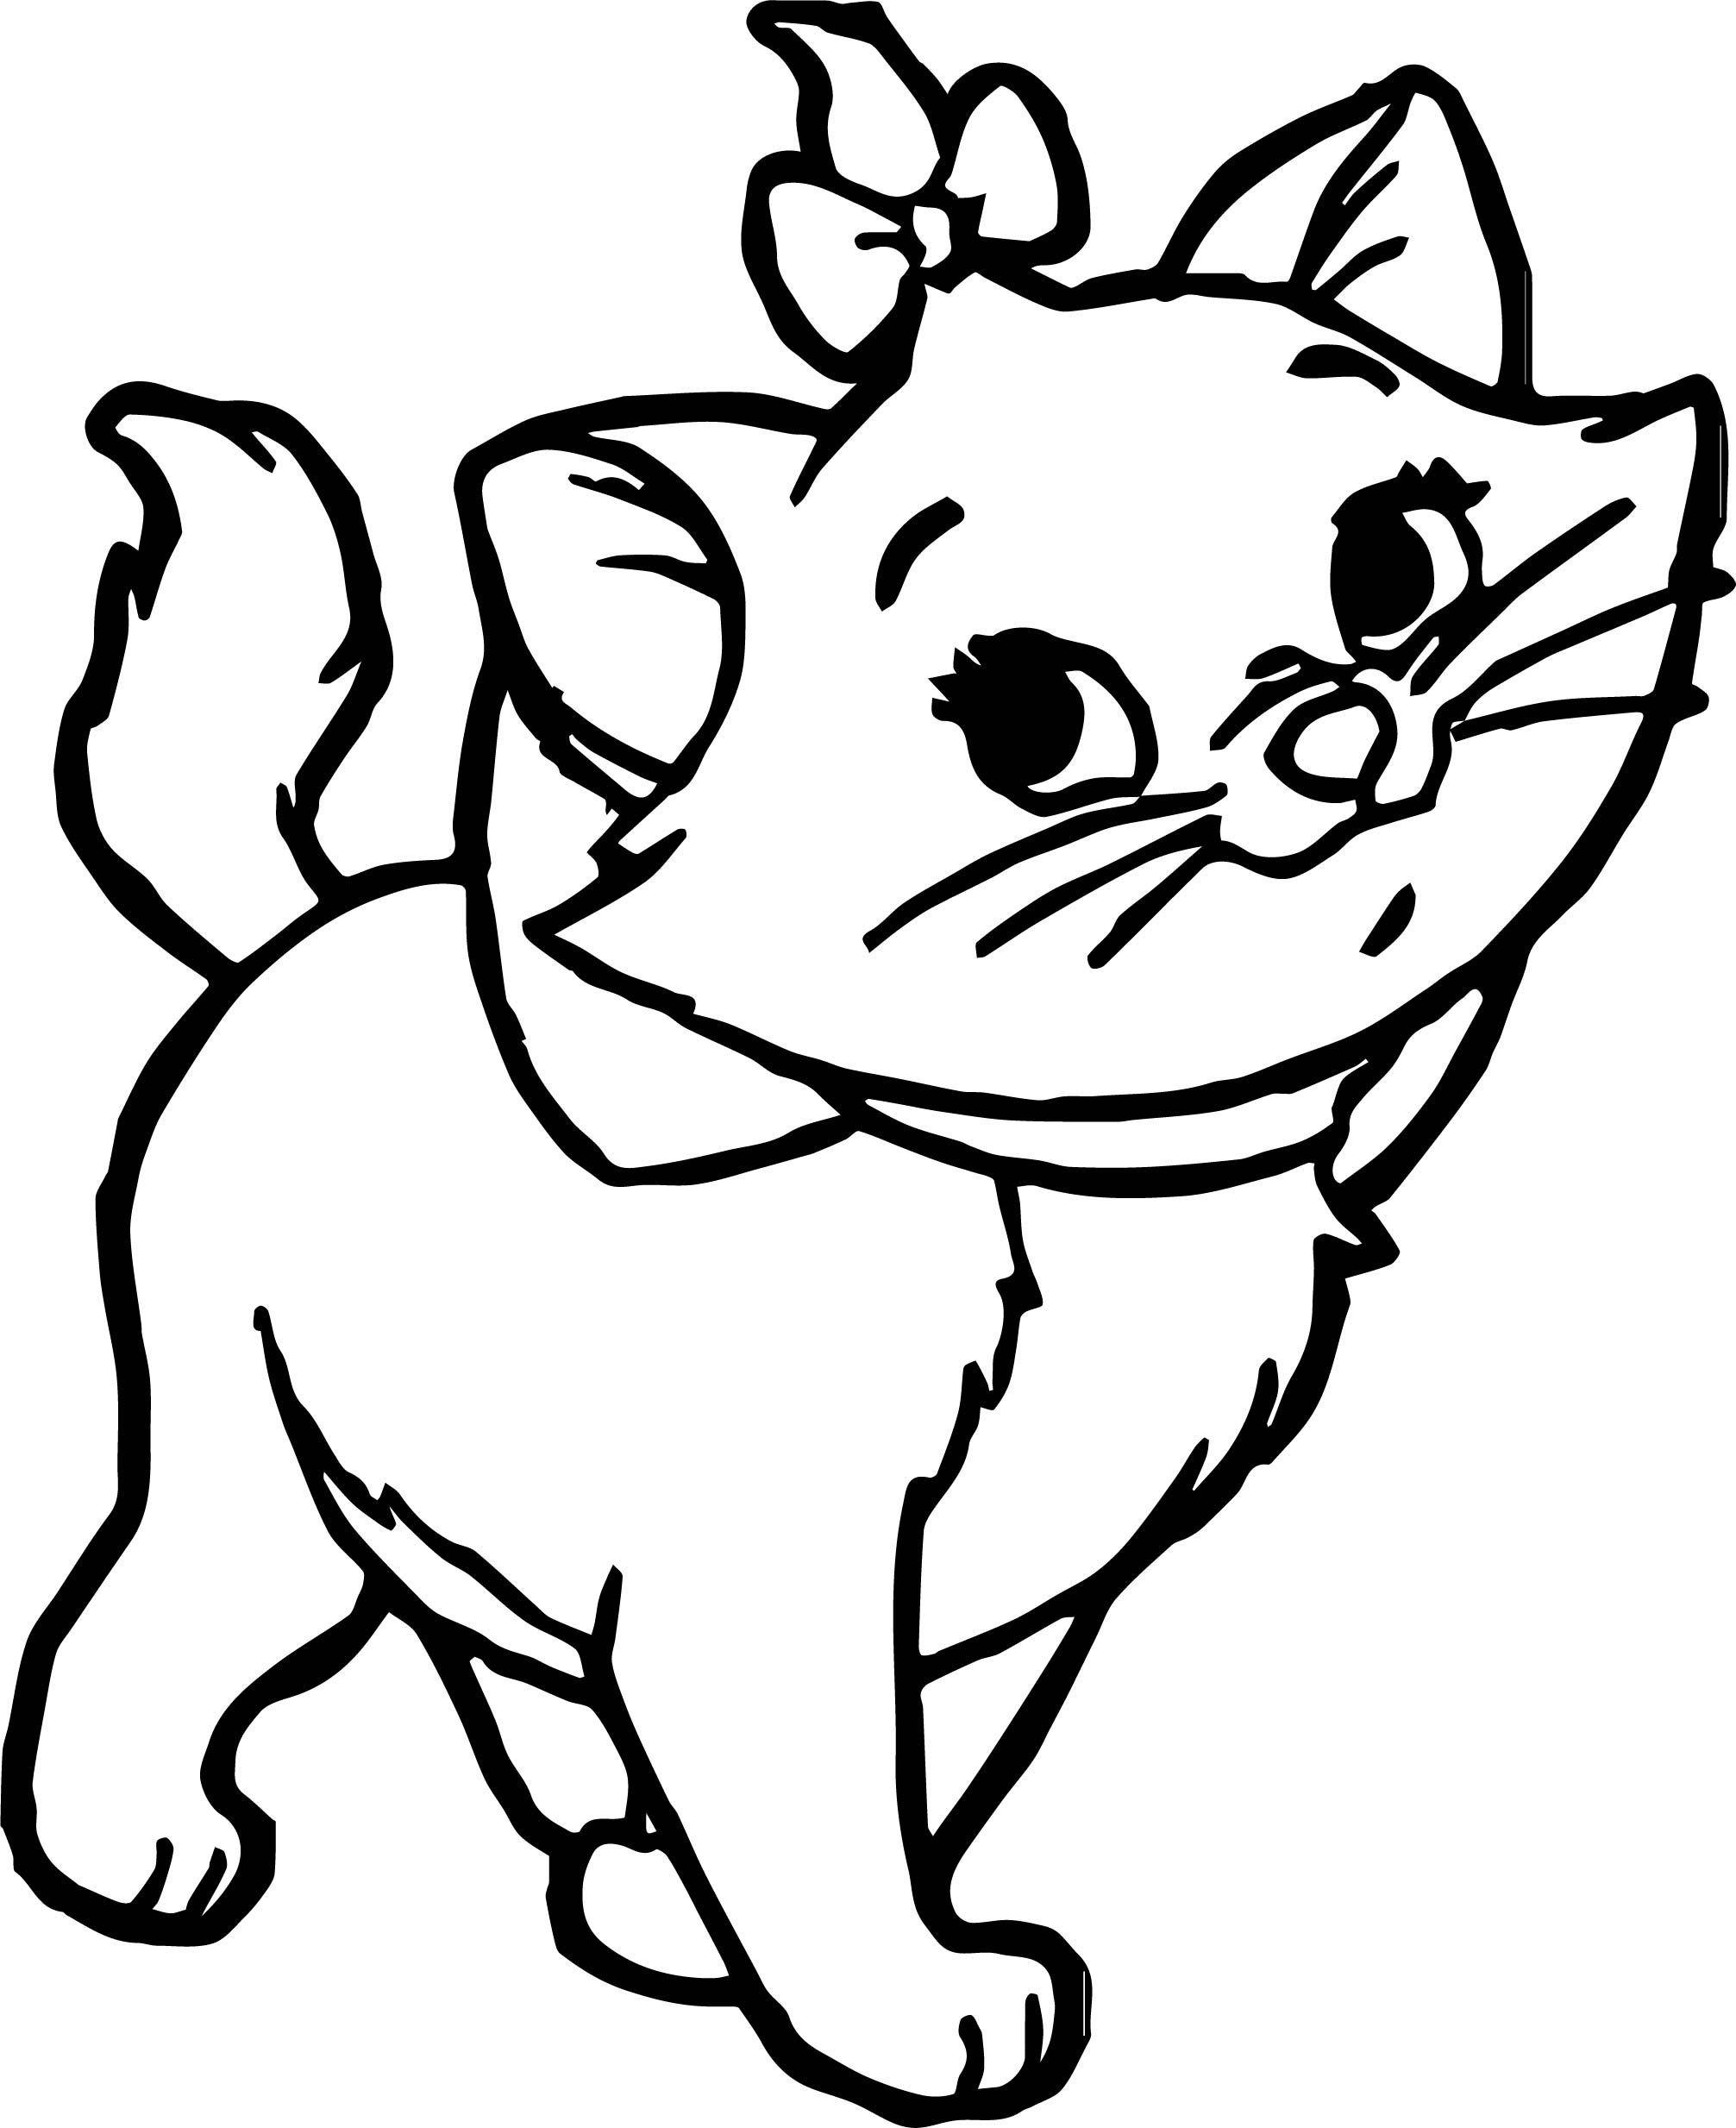 aristocats coloring pages - disney the aristocats walking coloring pages